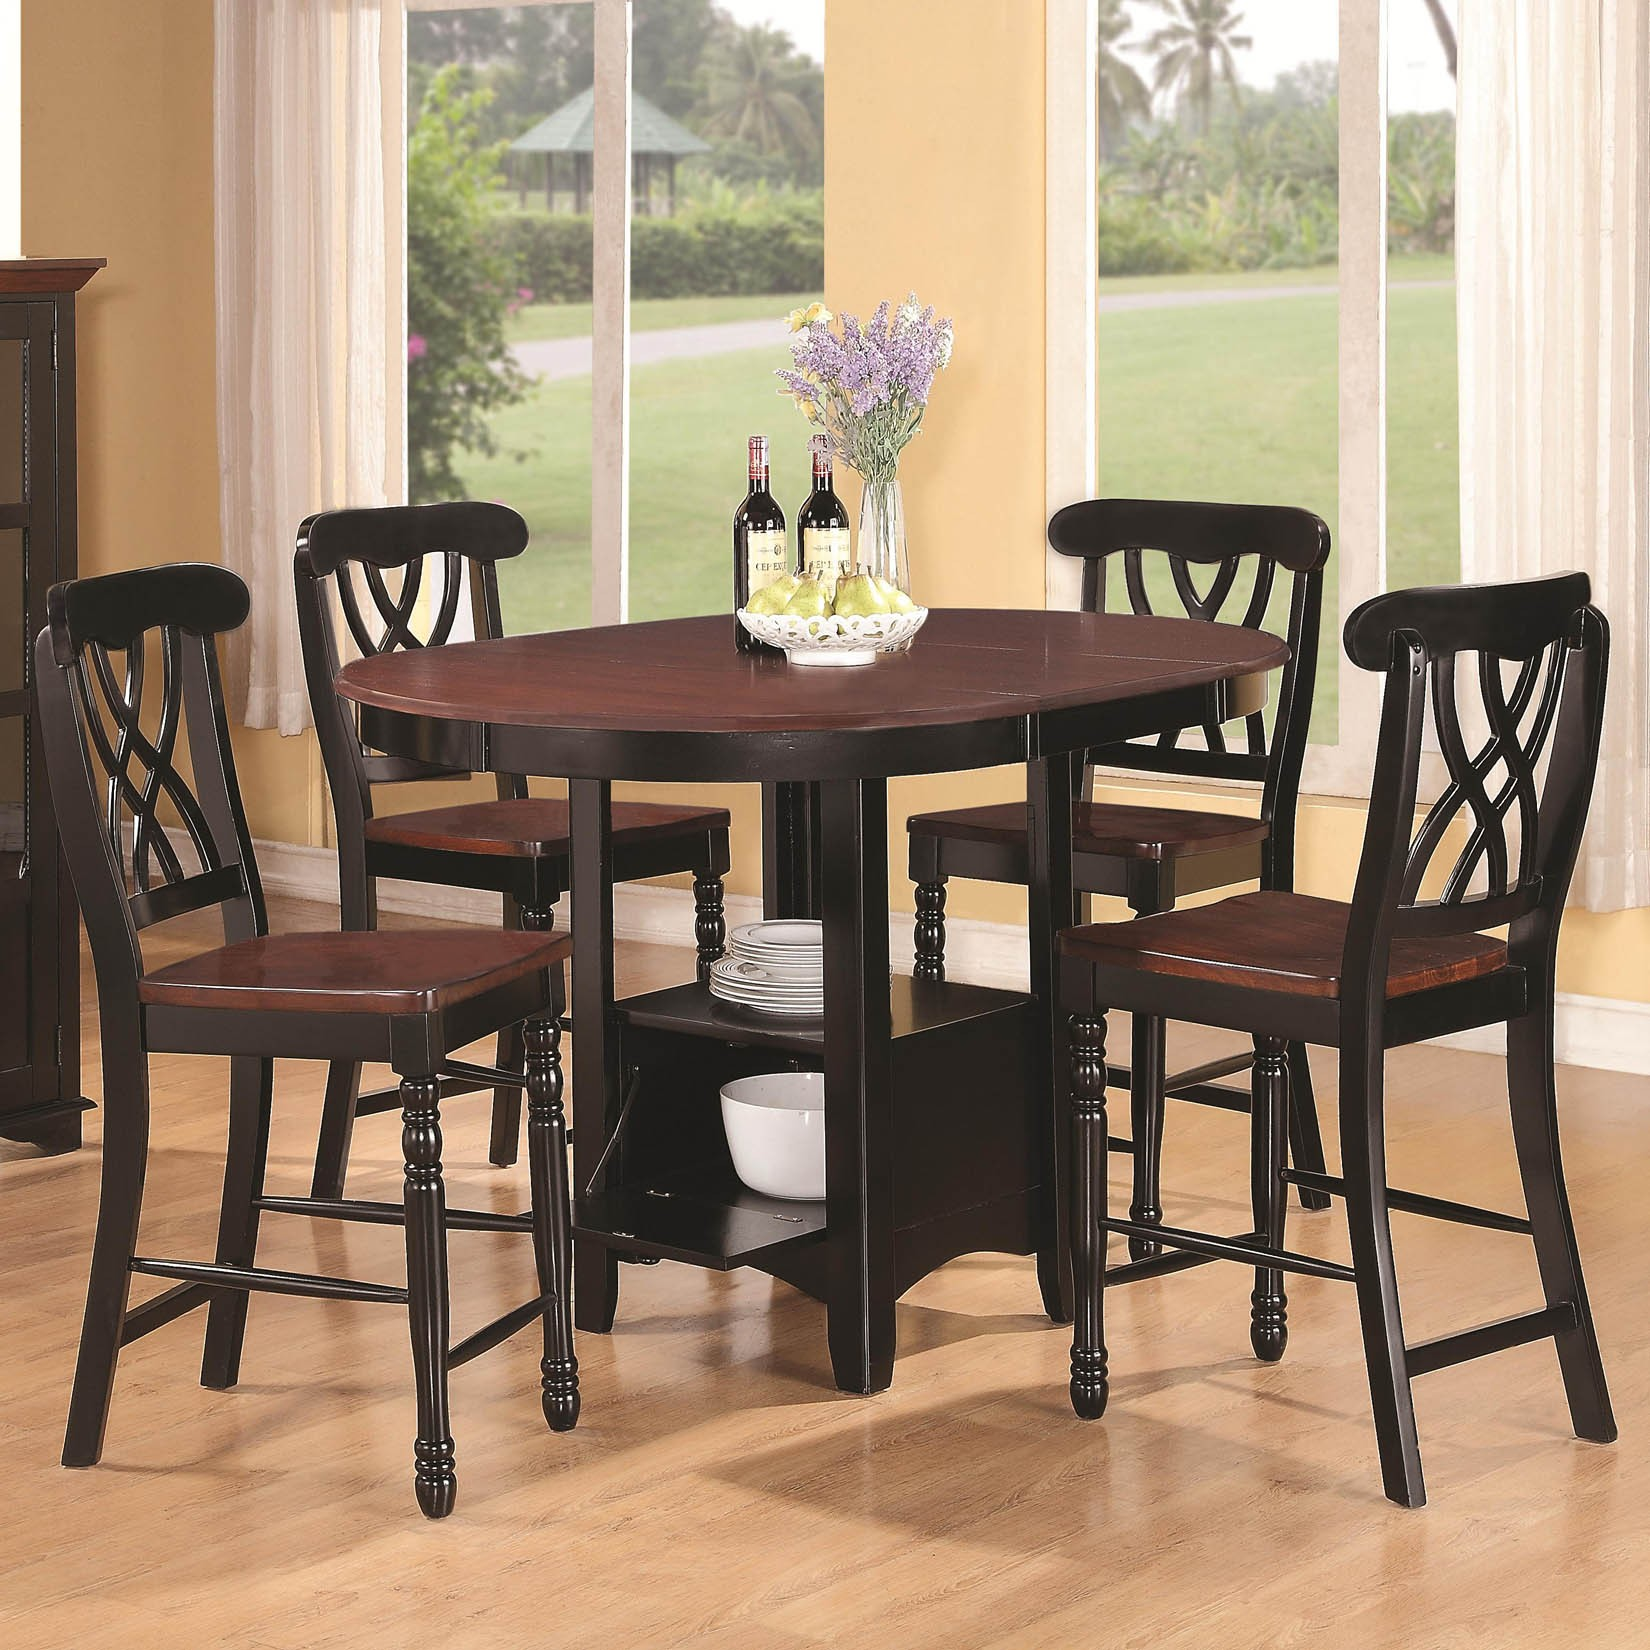 Dining Set Round Table: Adorable Round Dining Room Table Sets For 4